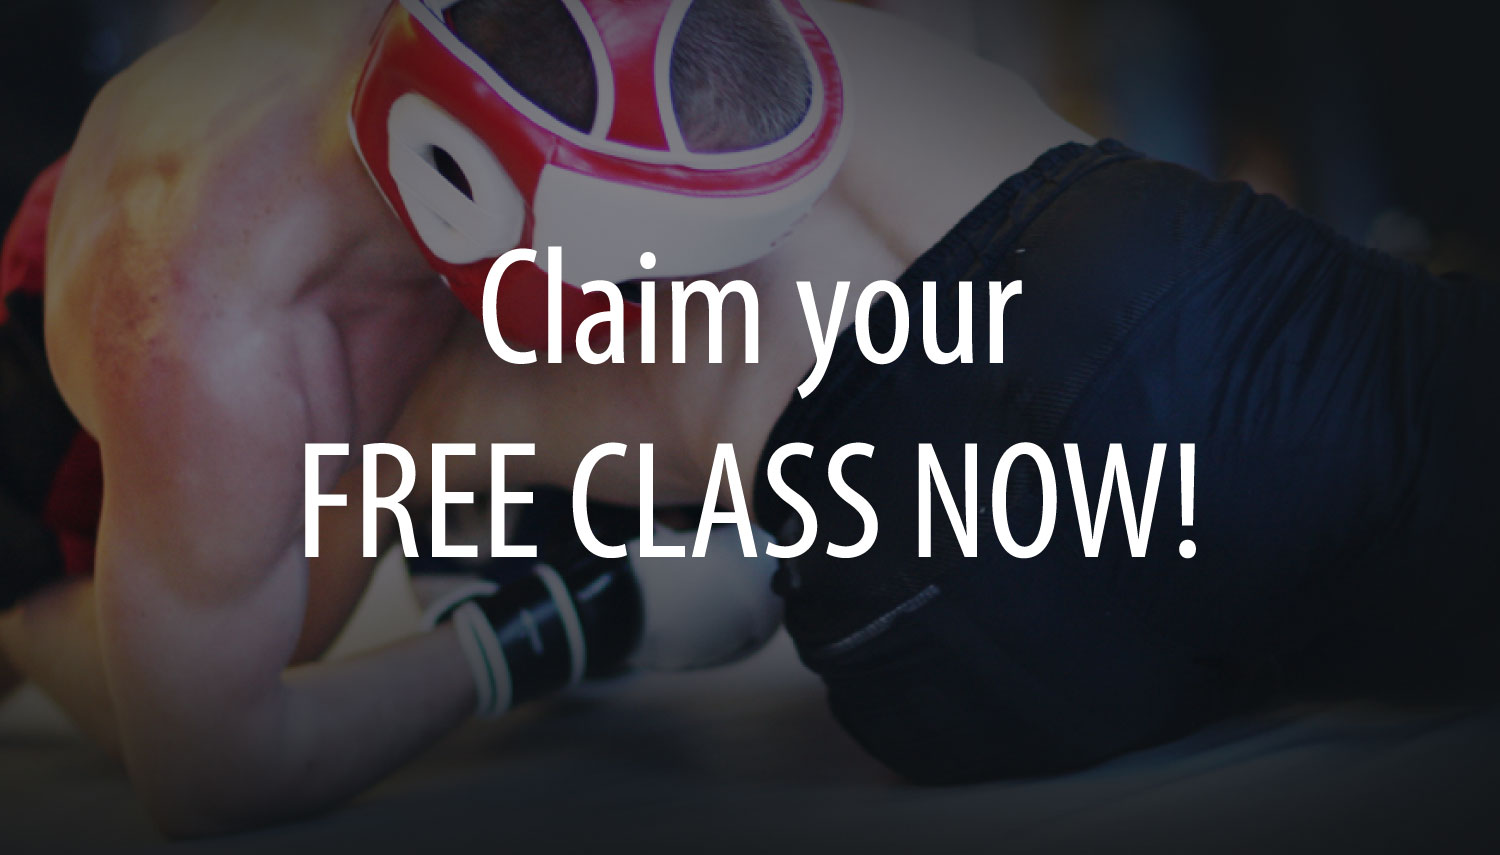 claim-your-free-class-now-jiujitsu